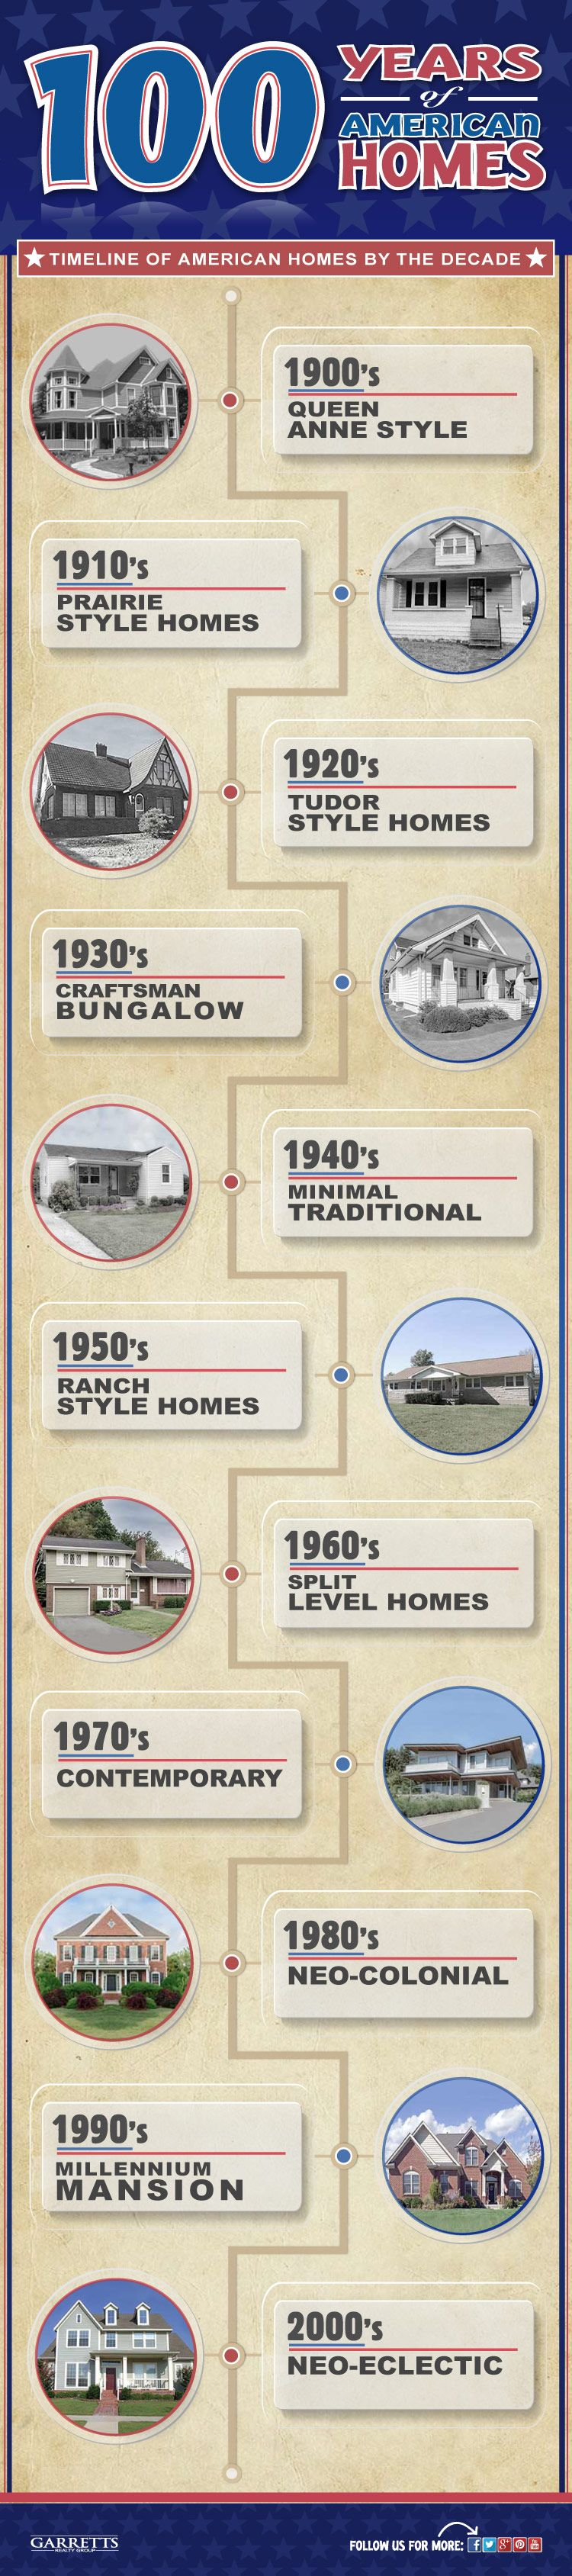 Different Styles Of American Homes By Each Decade 100 Years Infographic House Styles Architecture Fashion Types Of Houses Styles